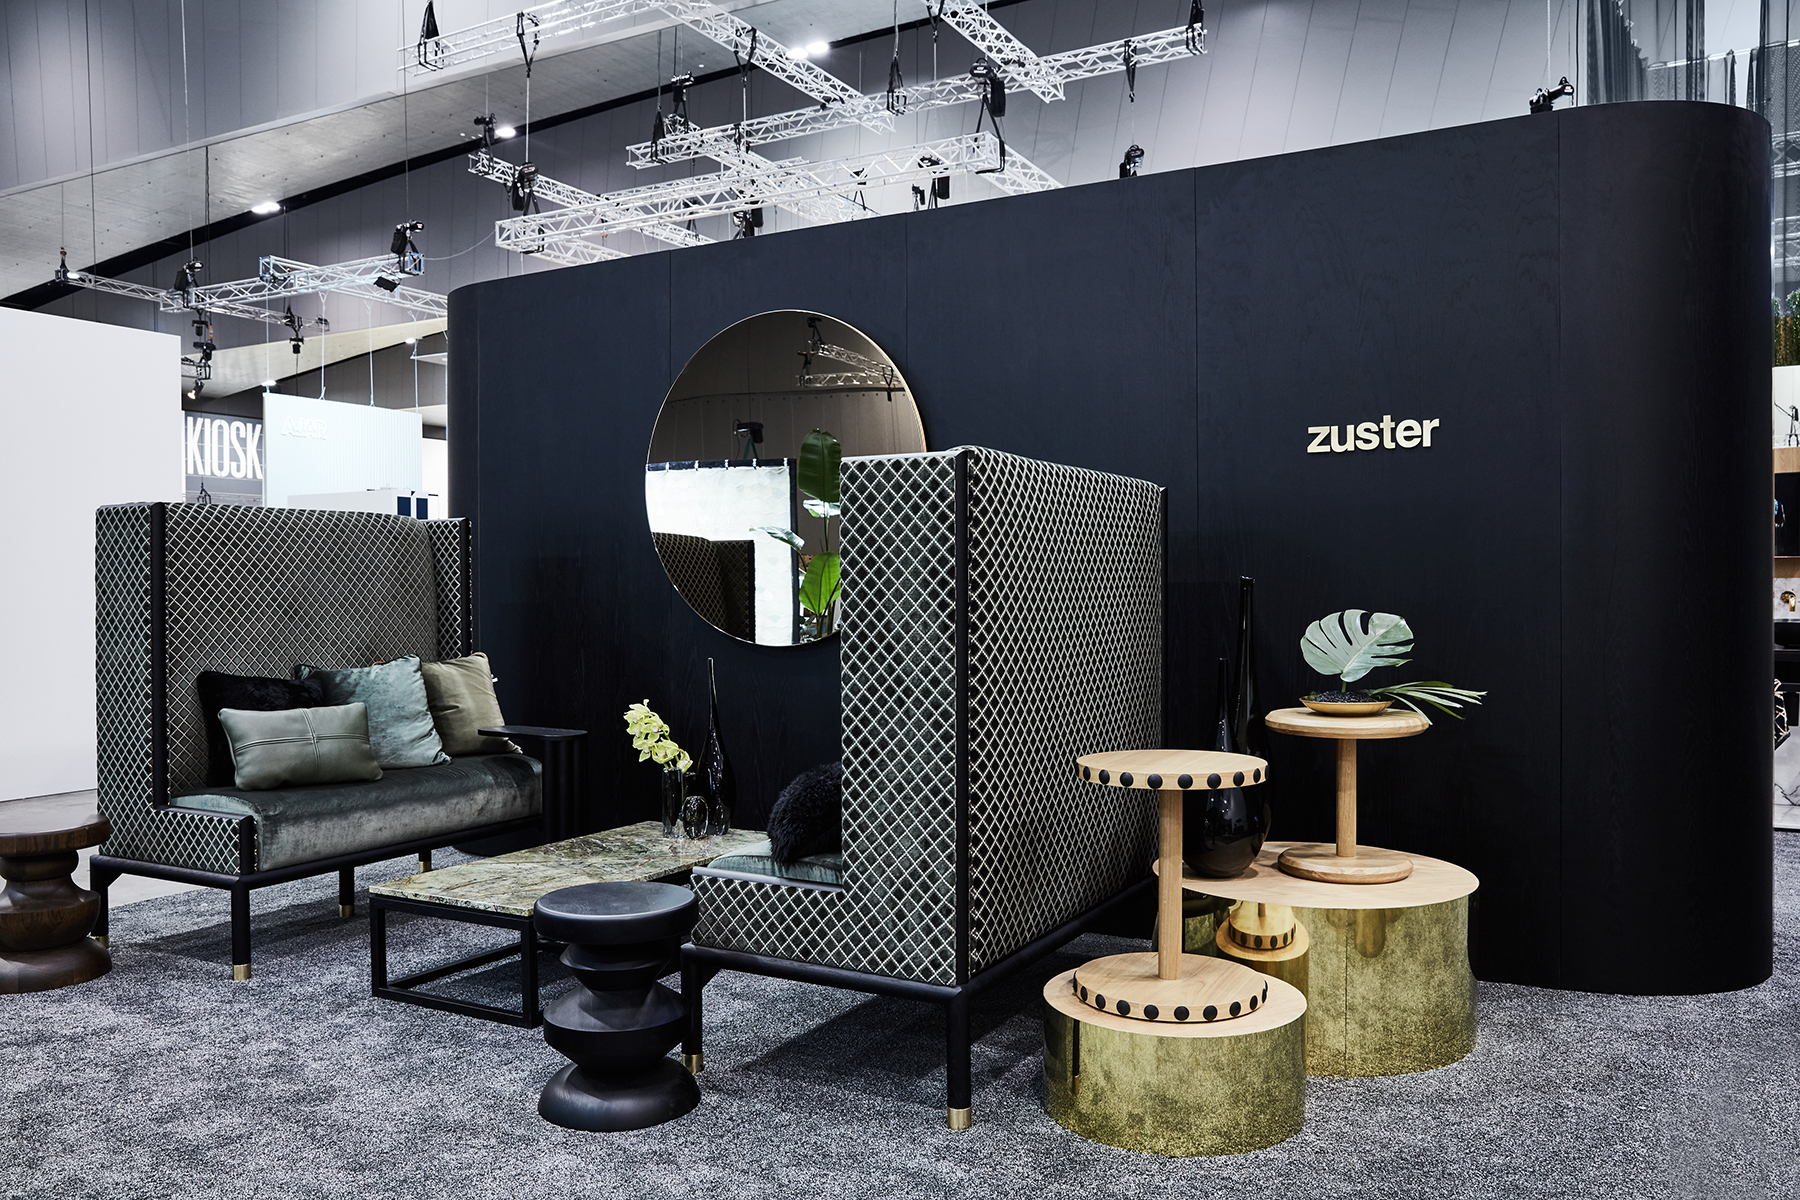 Zusters dark gothic look continued - spectacular and luxurious.